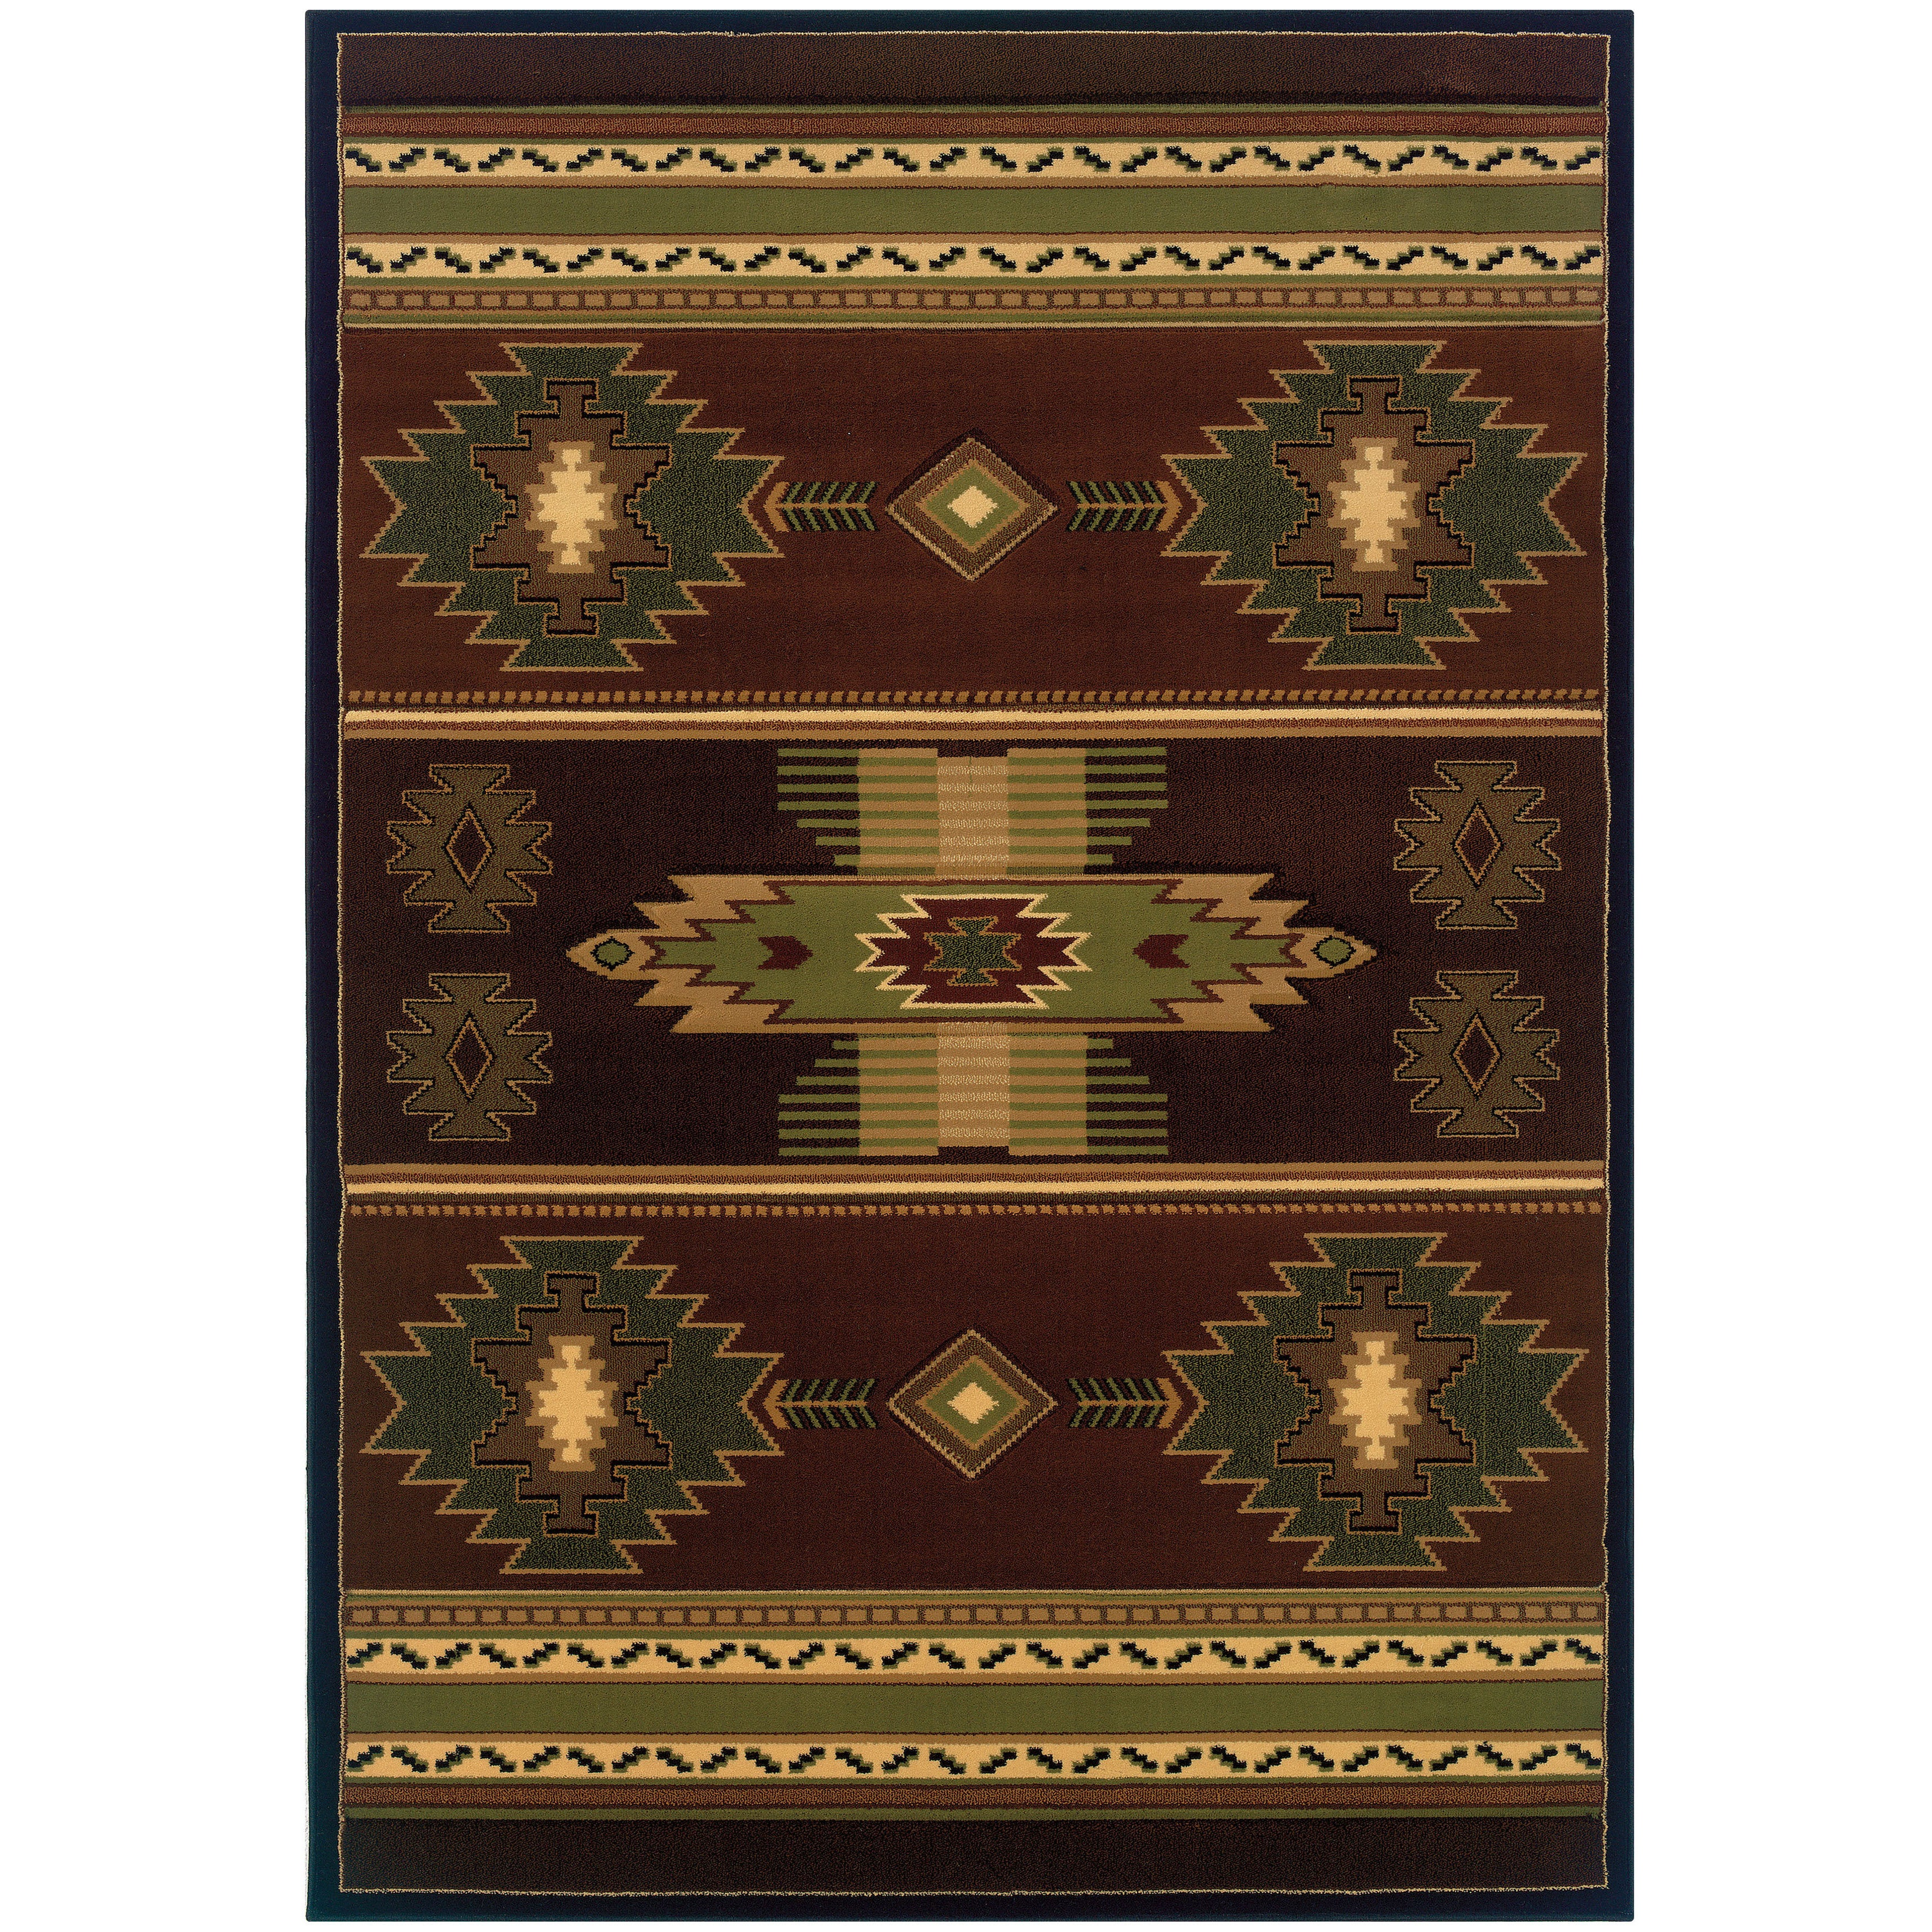 Wildwood Nashua Hand-carved Area Rug (5-feet 3-inches x 7-feet 6-inches) - 53 x 76 (Brown/Green)